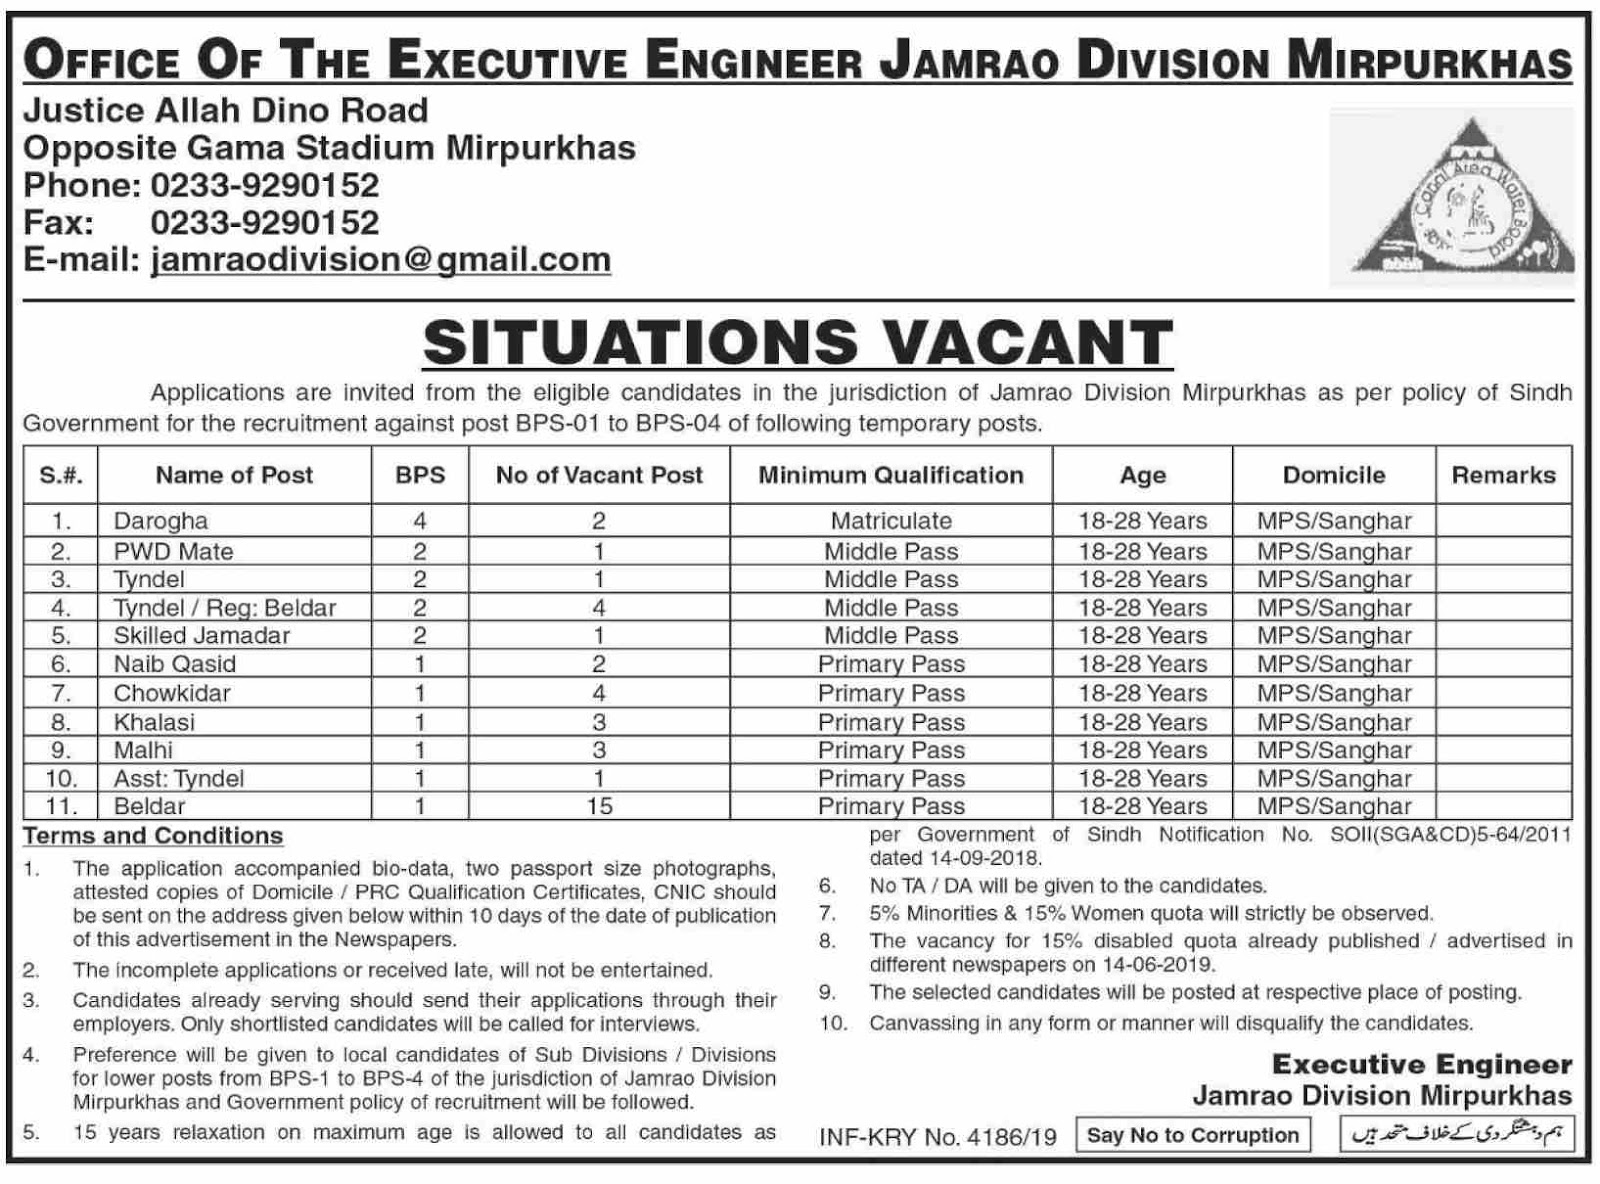 Advertisement for the Office of the Executive Engineer Jobs